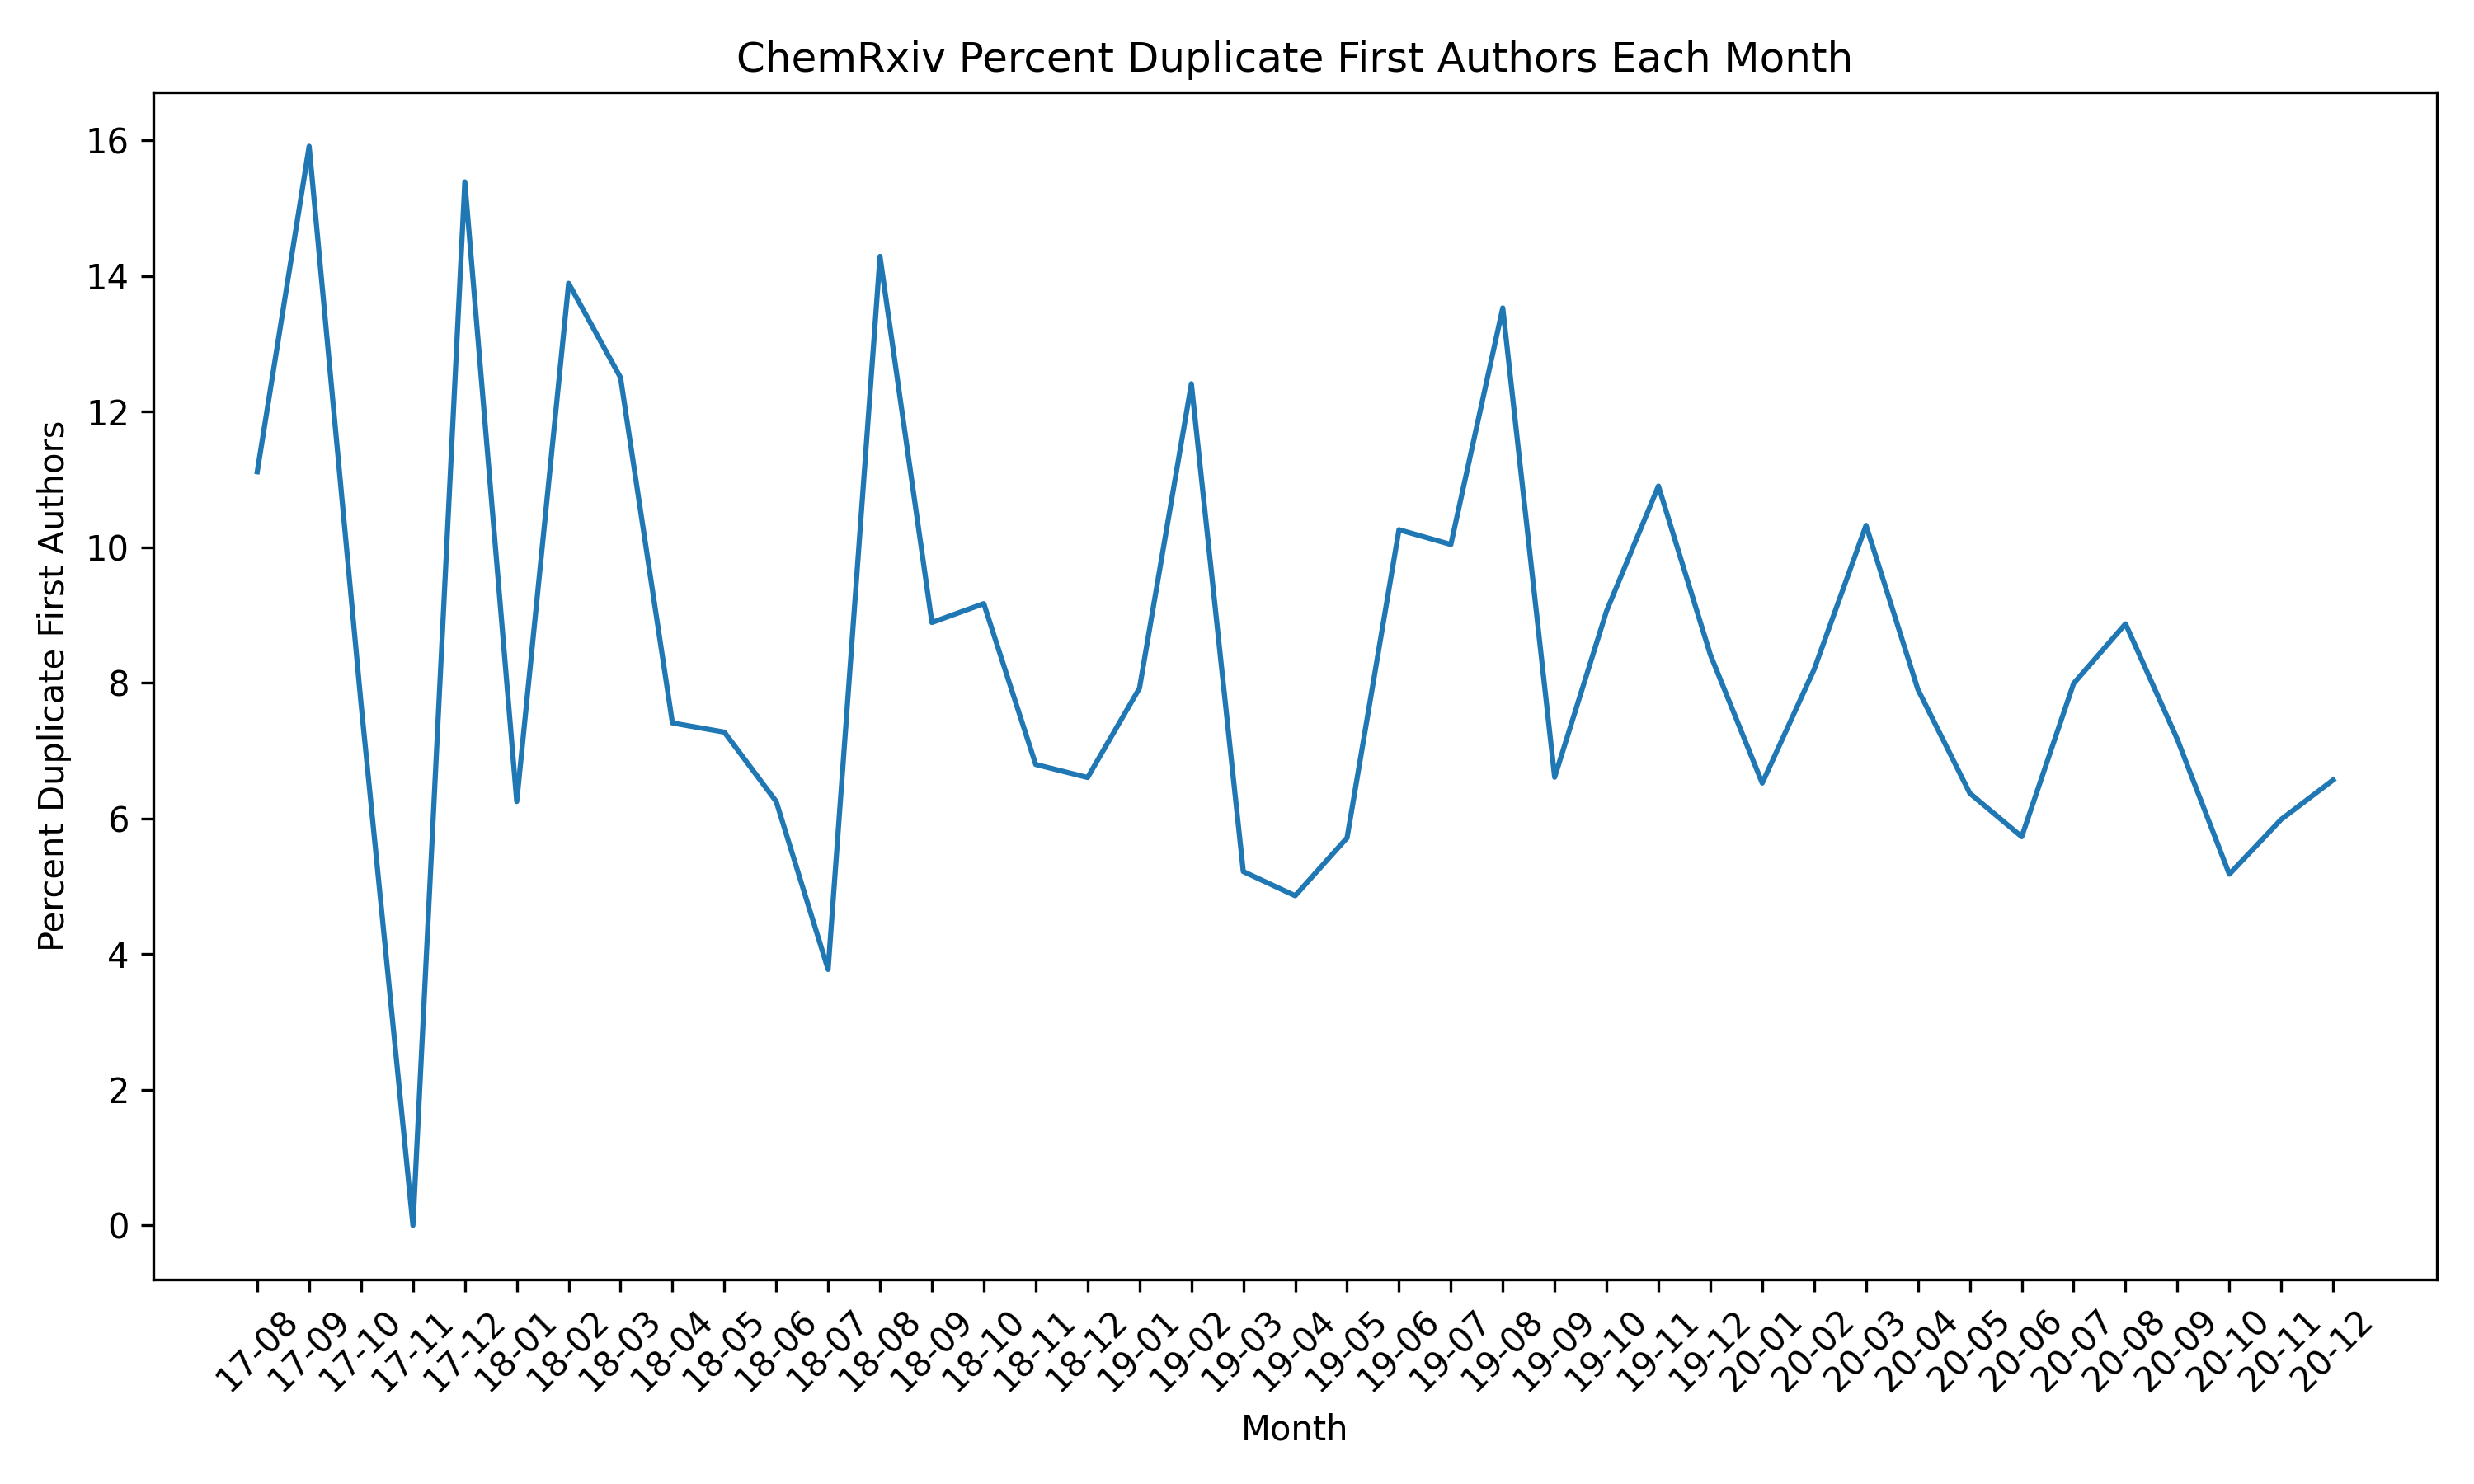 Percent Duplicate Authors per Month